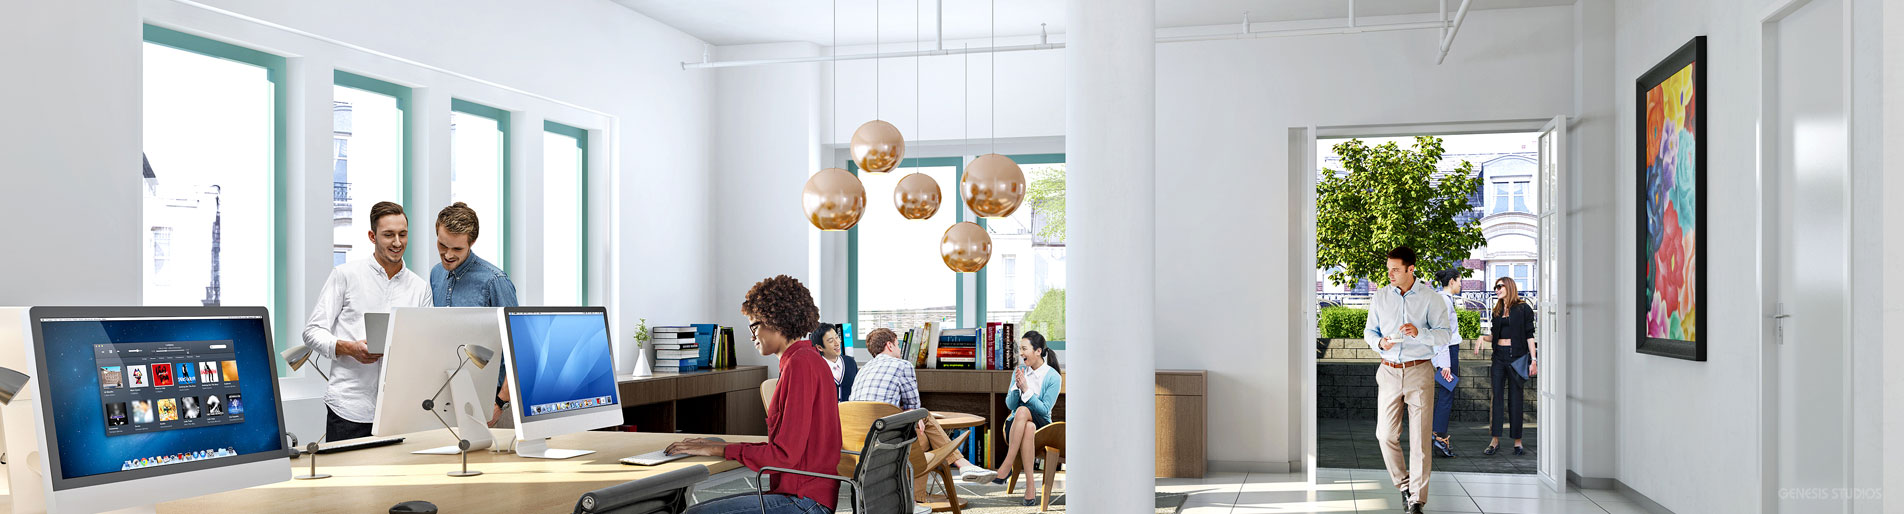 515119 Digital Architectural Rendering of Office Interior for L & L Holding